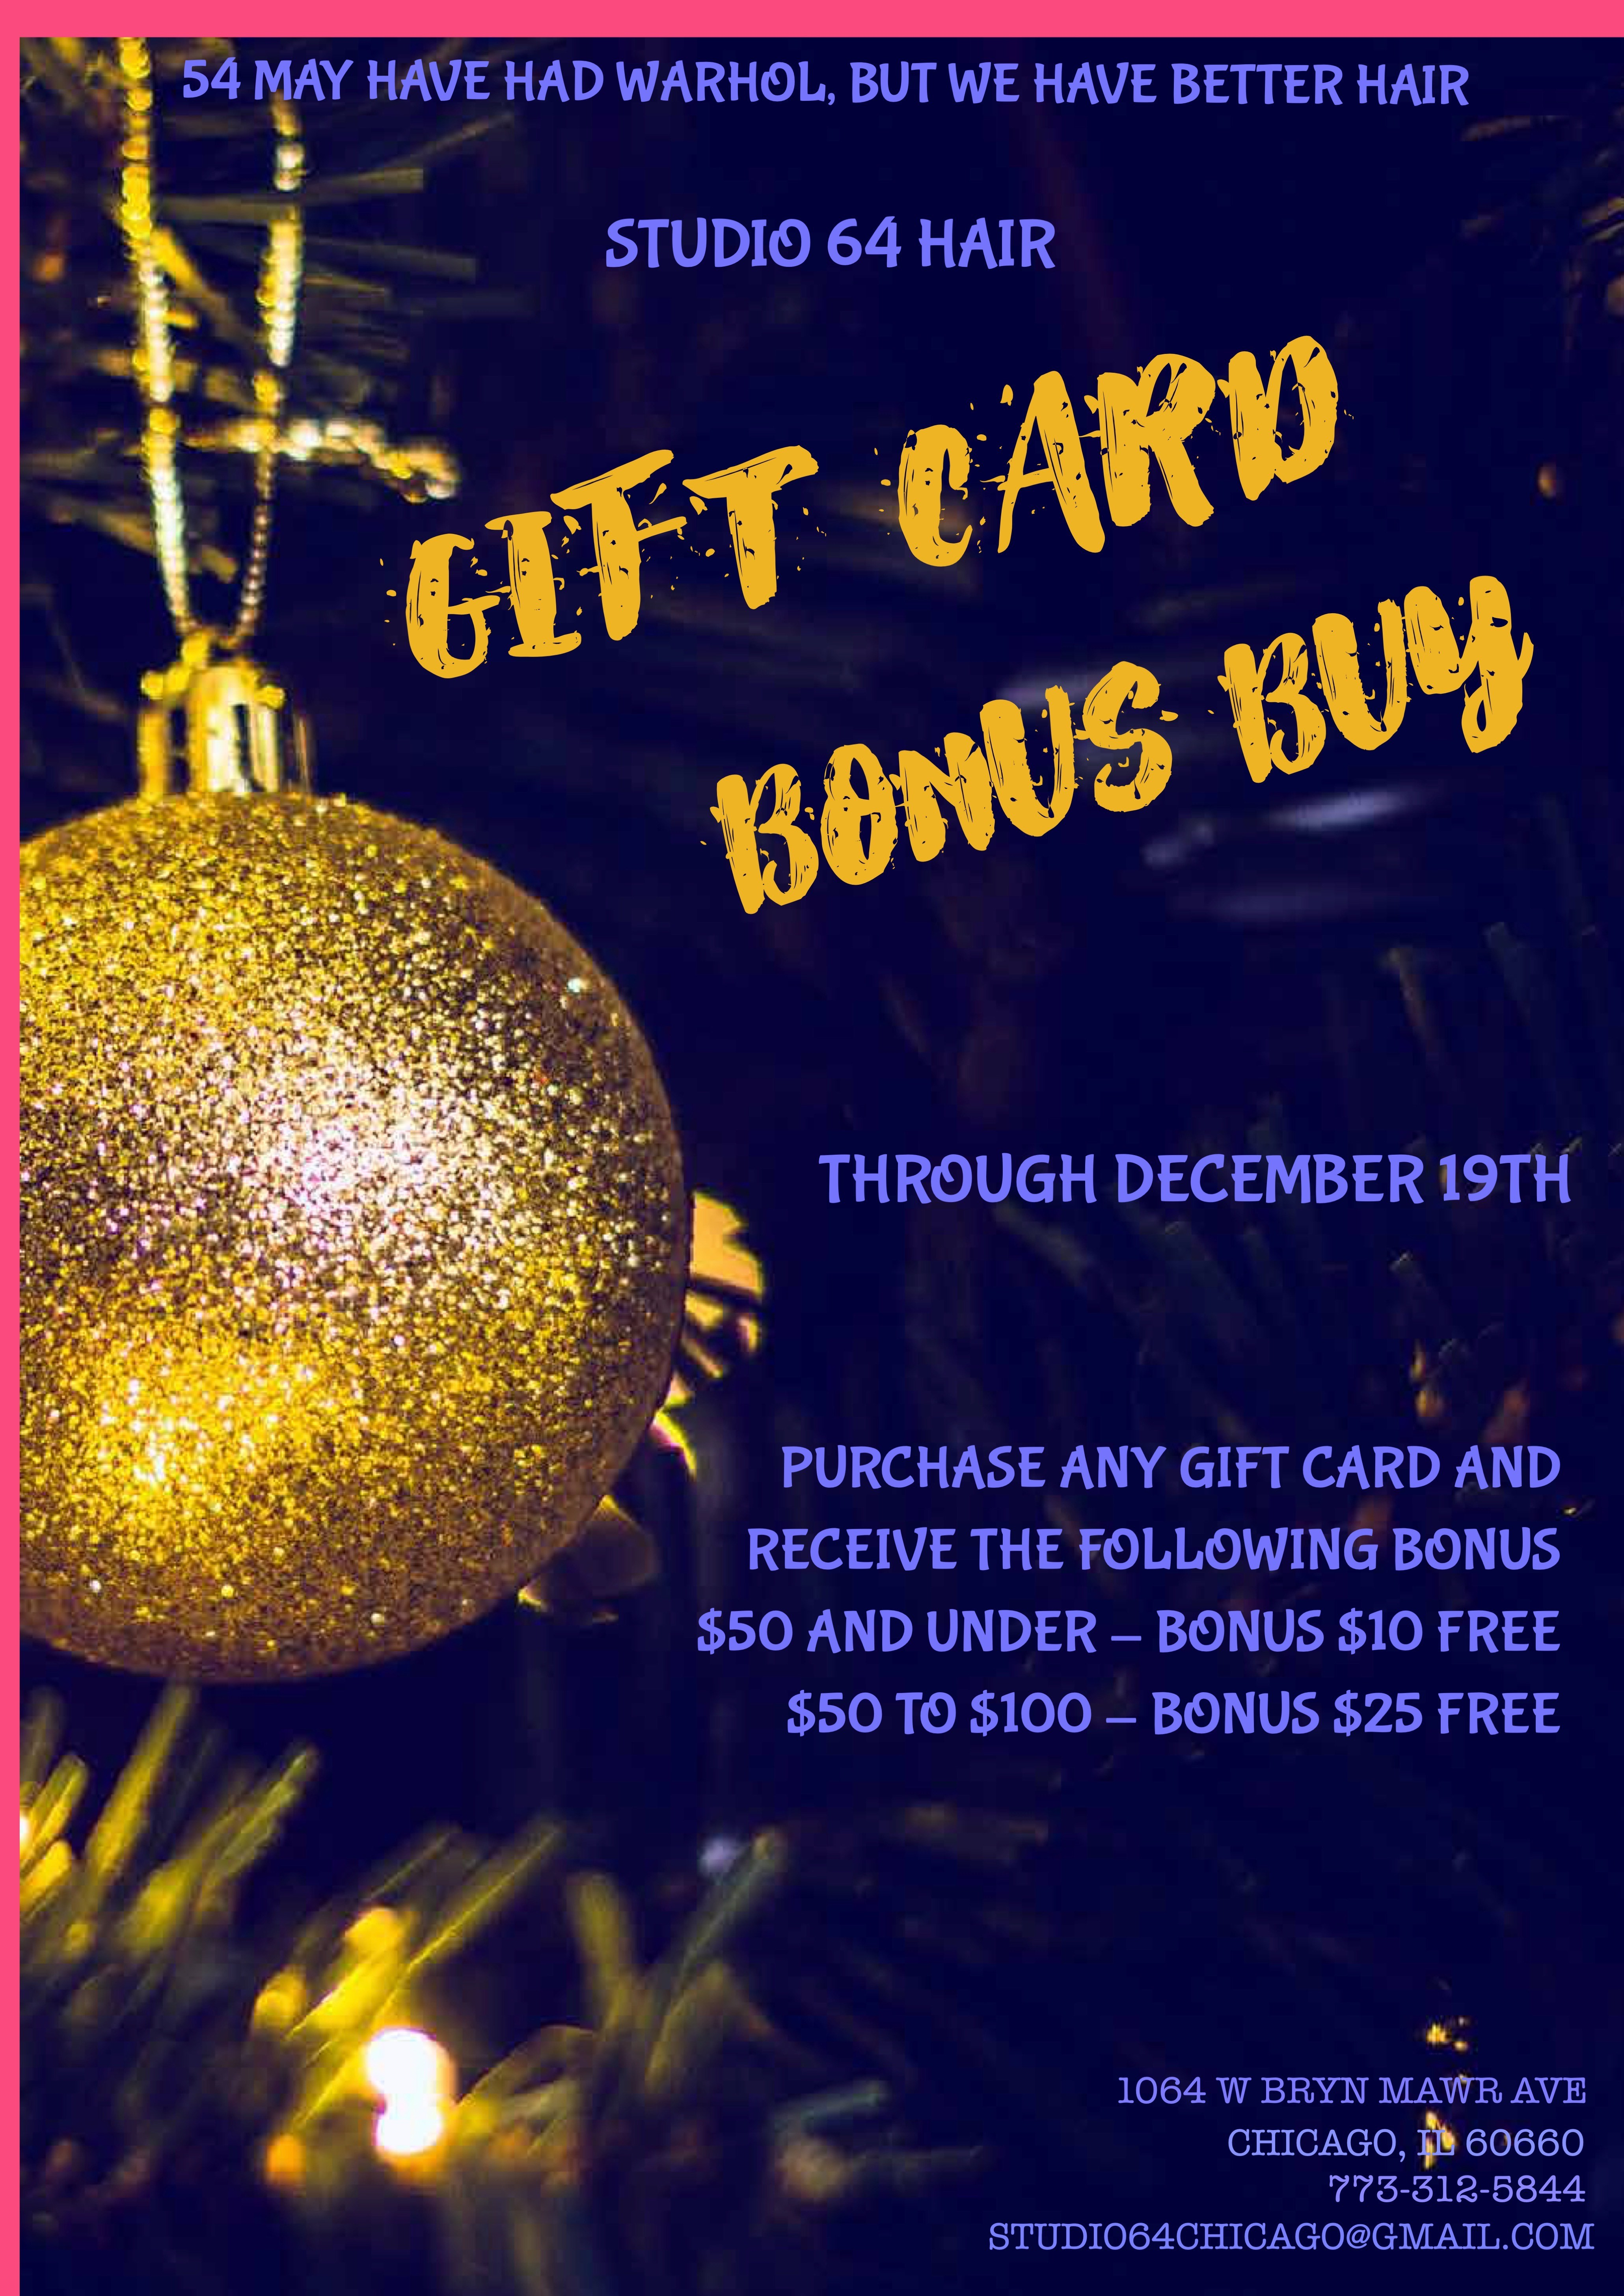 Studio 64 Hair gift card bonus buy. Through December 19, purchase any gift card and receive the following bonus: $10 for a gift card of $50 and under, and $25 free for a gift card for $51 to $100